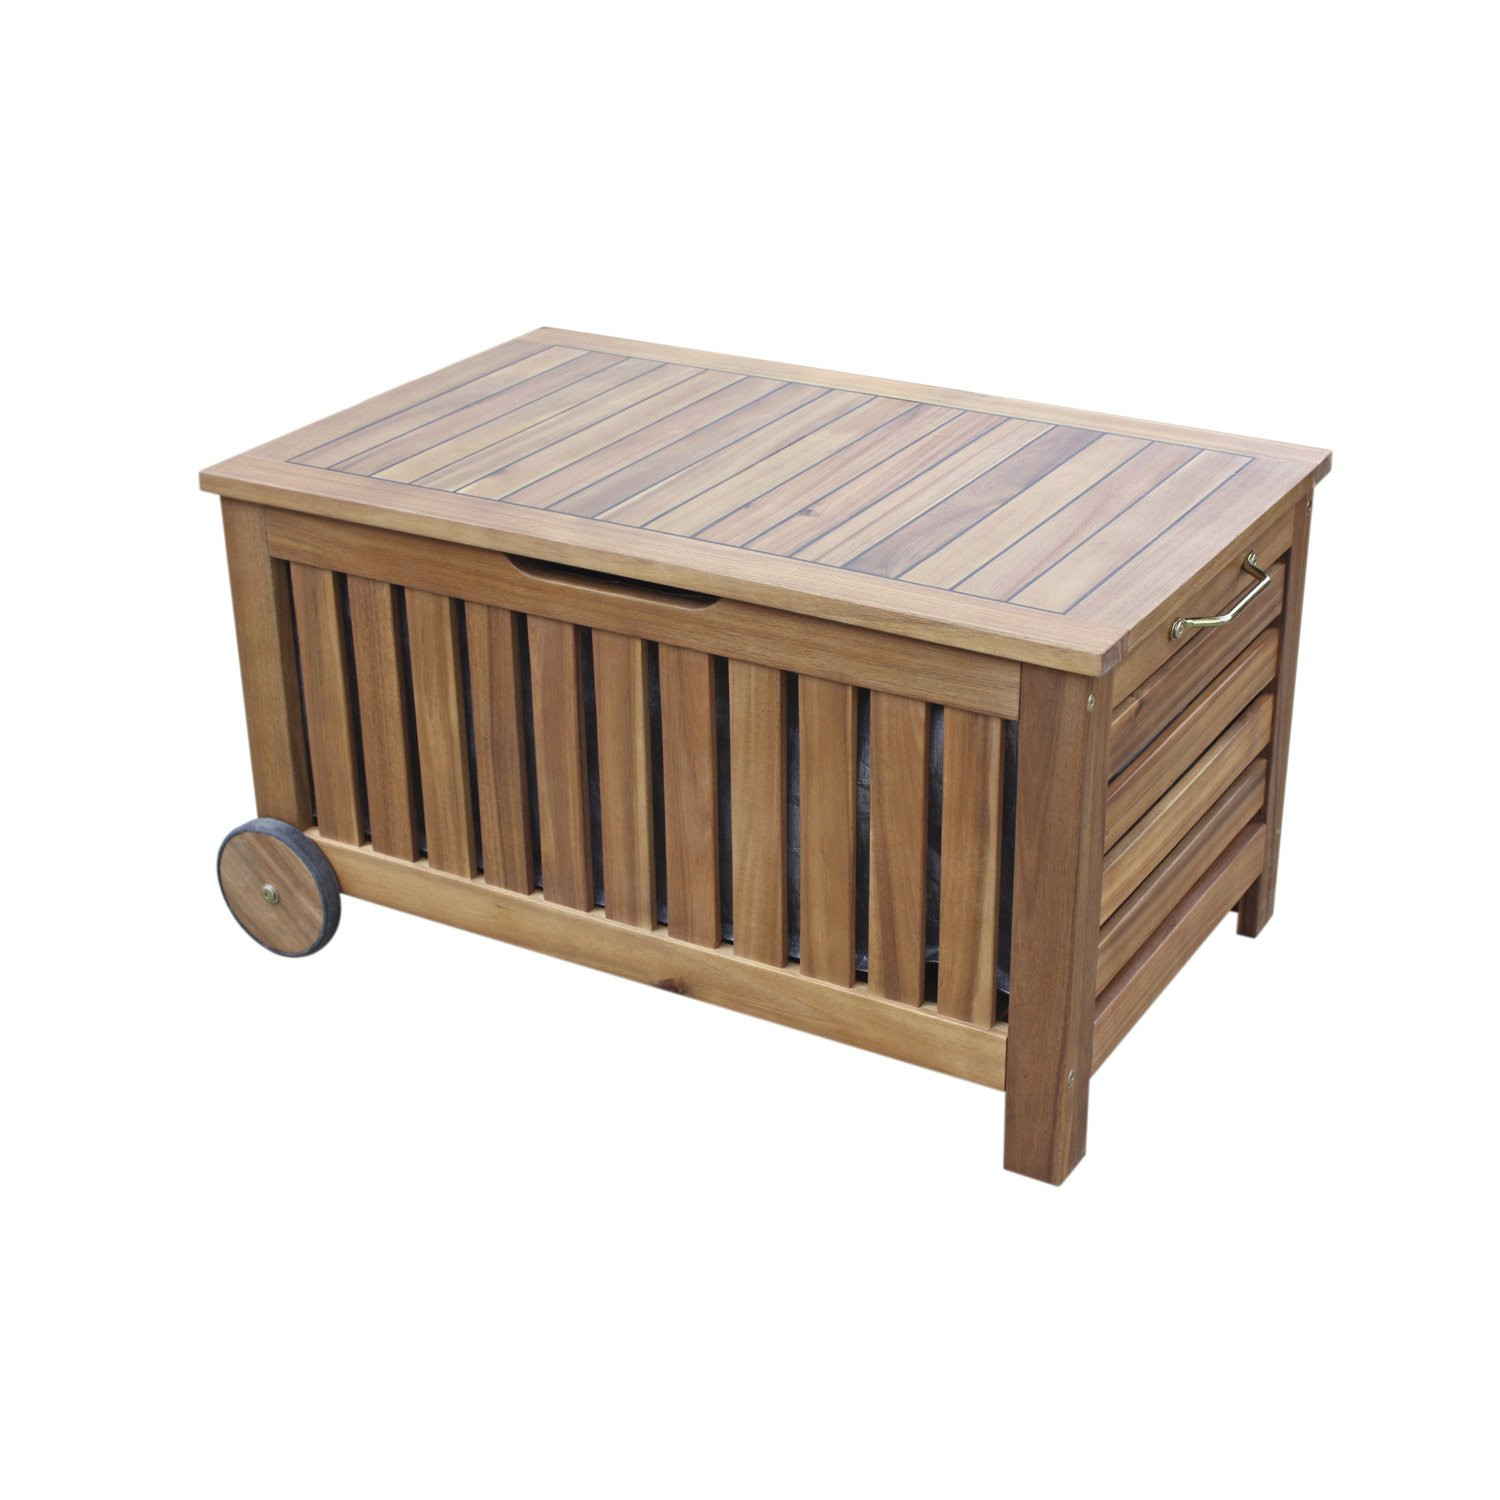 Table Bac A Sable Leroy Merlin Frais Photos Table De Jardin En Bois Avec Banc Integre Inspirant Love This